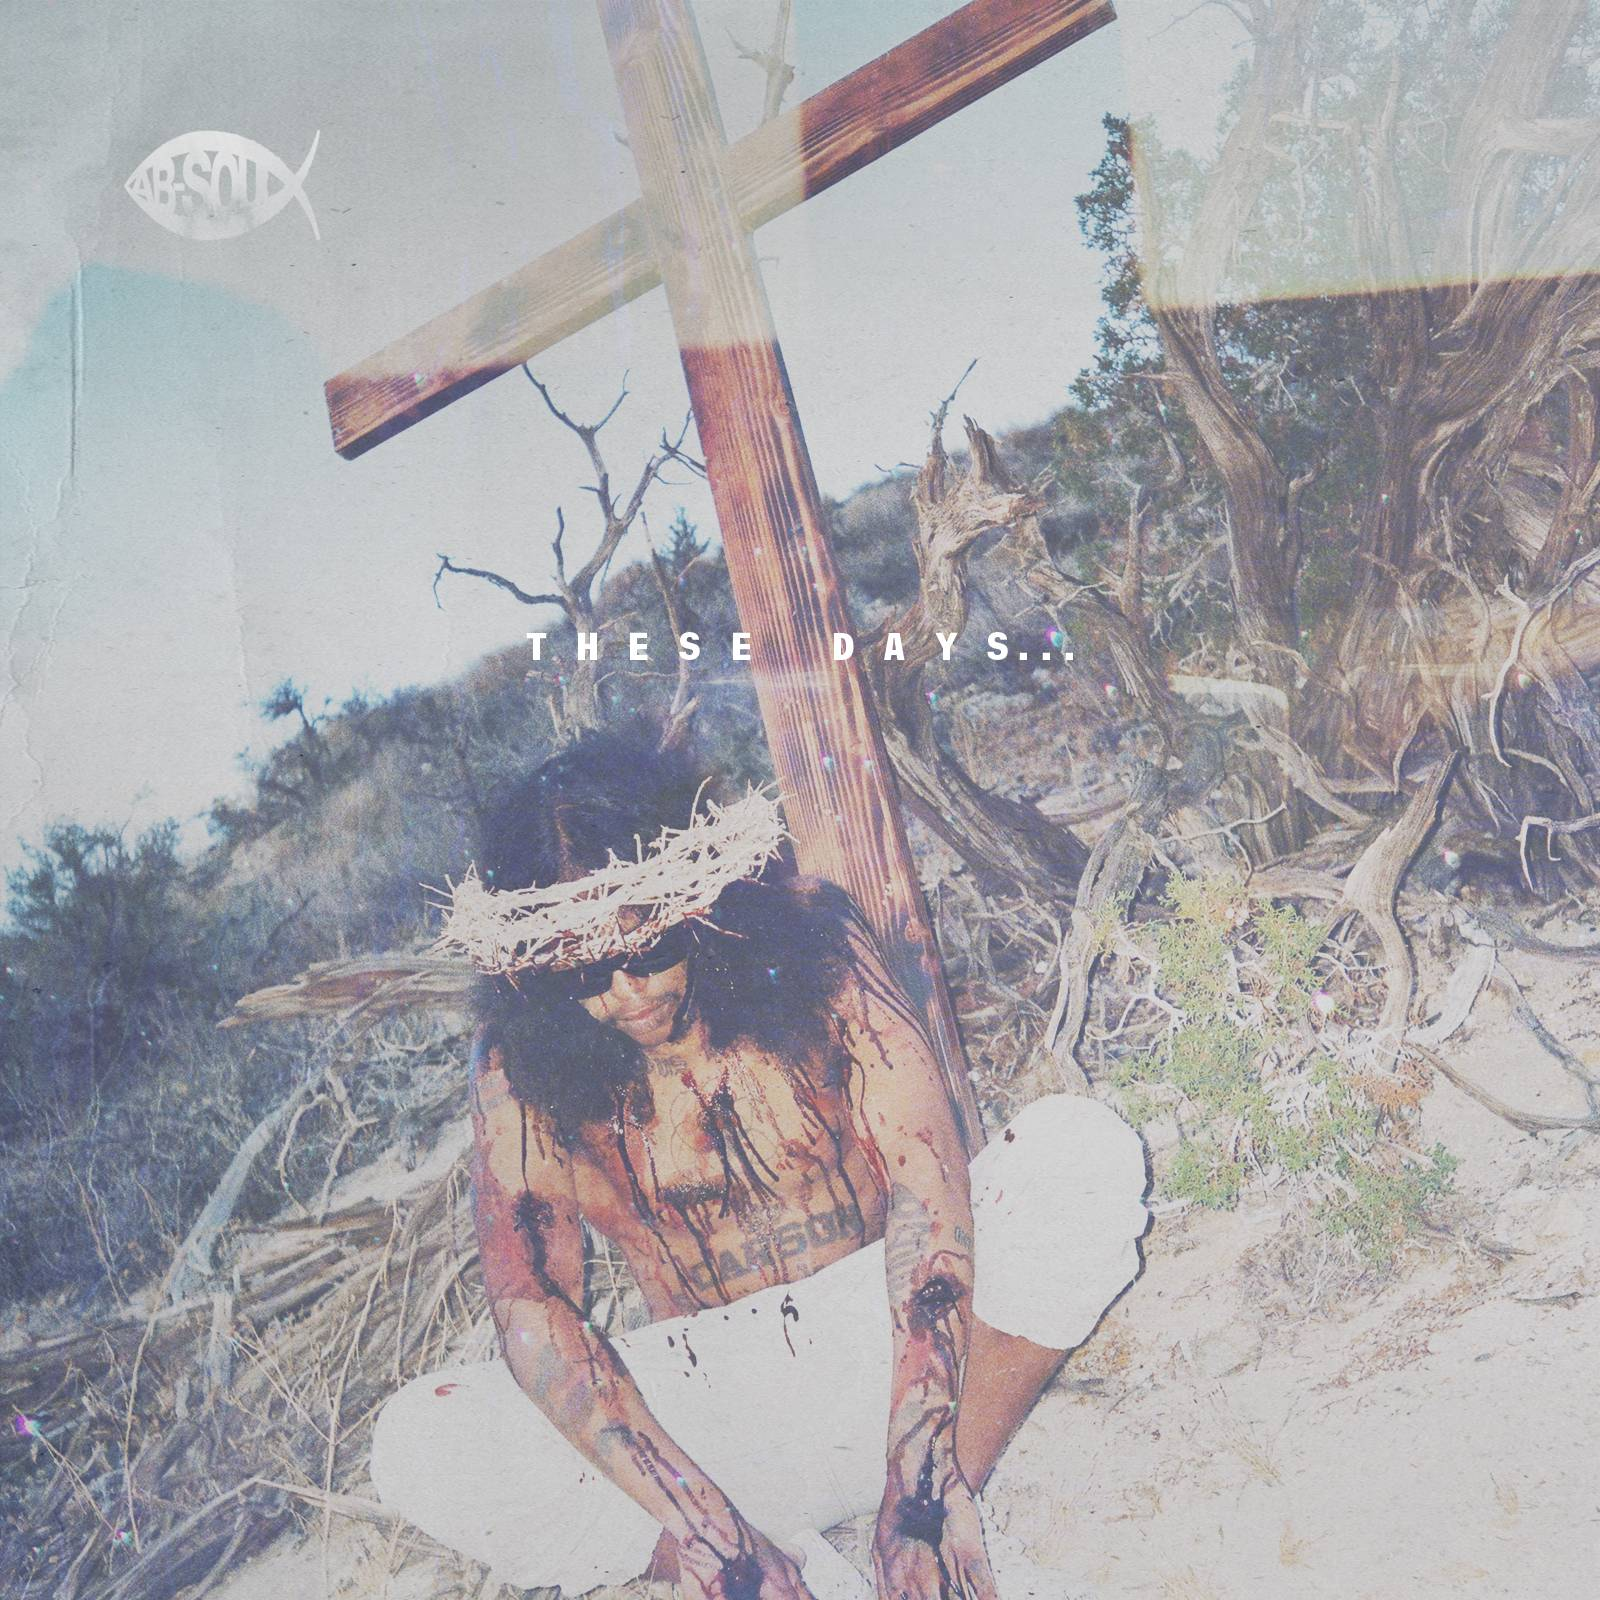 """These Days"" by Ab-Soul is overstuffed with ideas, sonic shout-outs, a variety of moods and more."